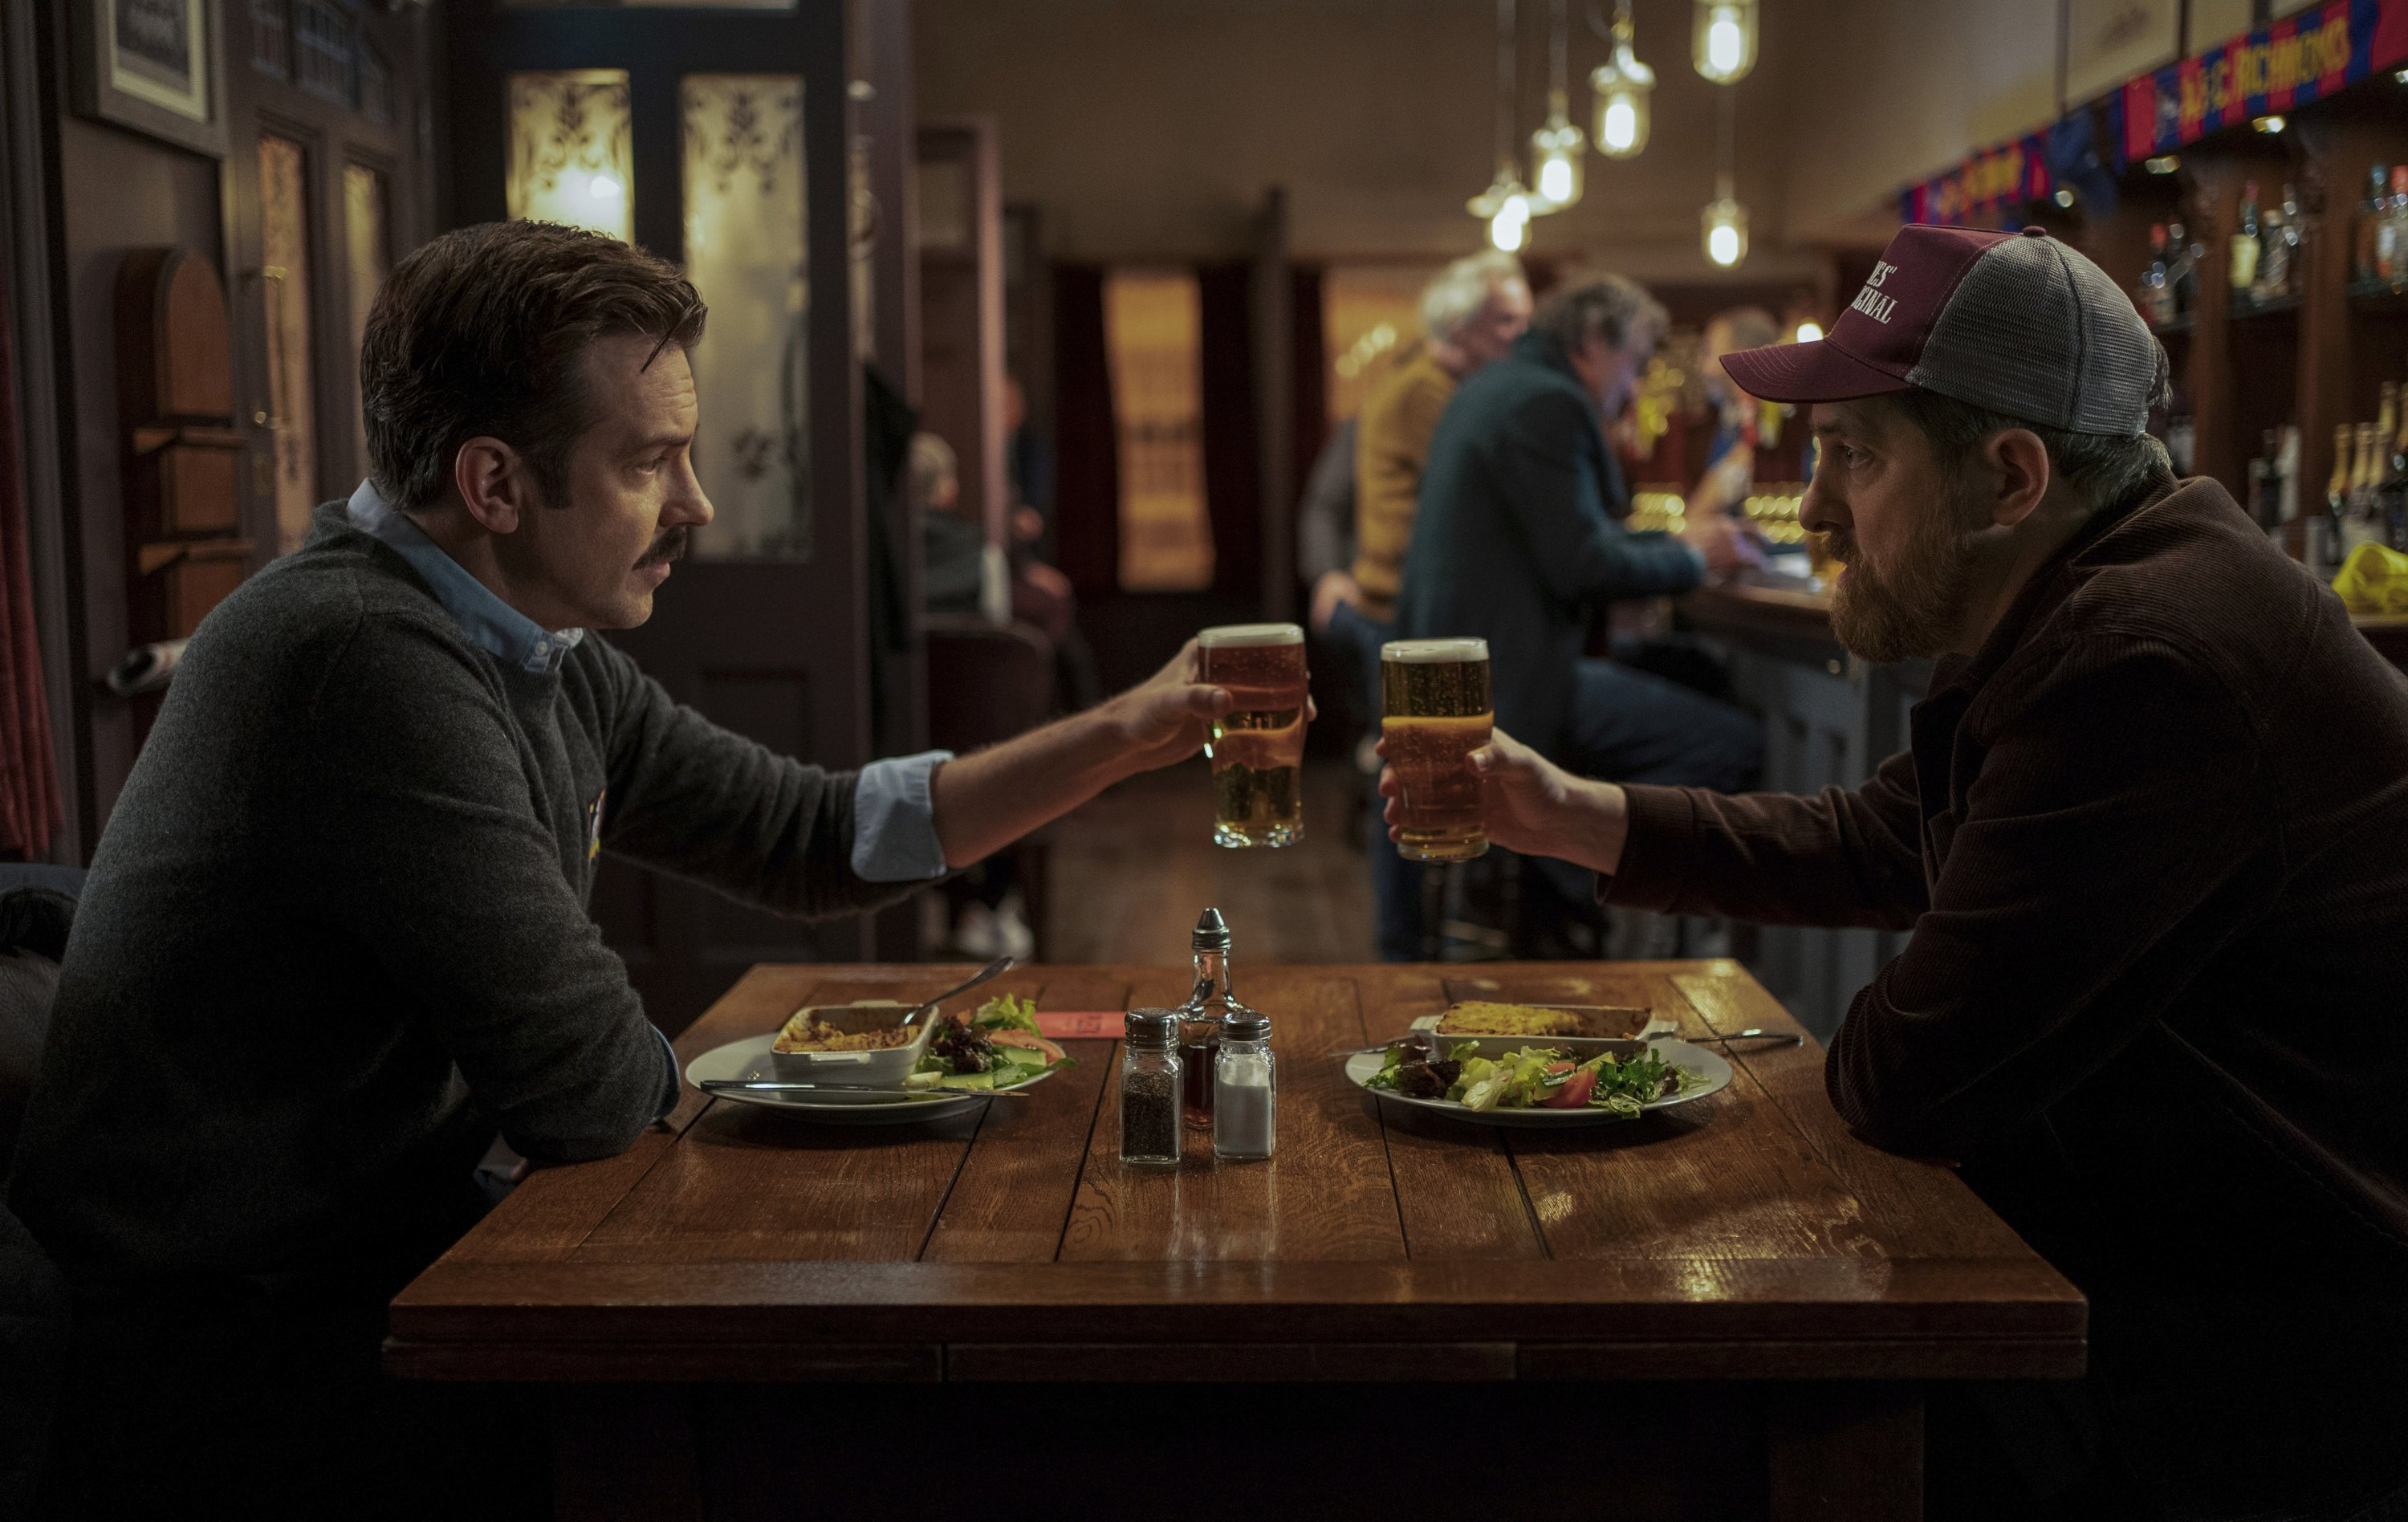 Jason Sudeikis (L), as Ted Lasso, and Brendan Hunt toast their glasses, in a scene from the series 'Ted Lasso.' (Apple TV+ via AP)